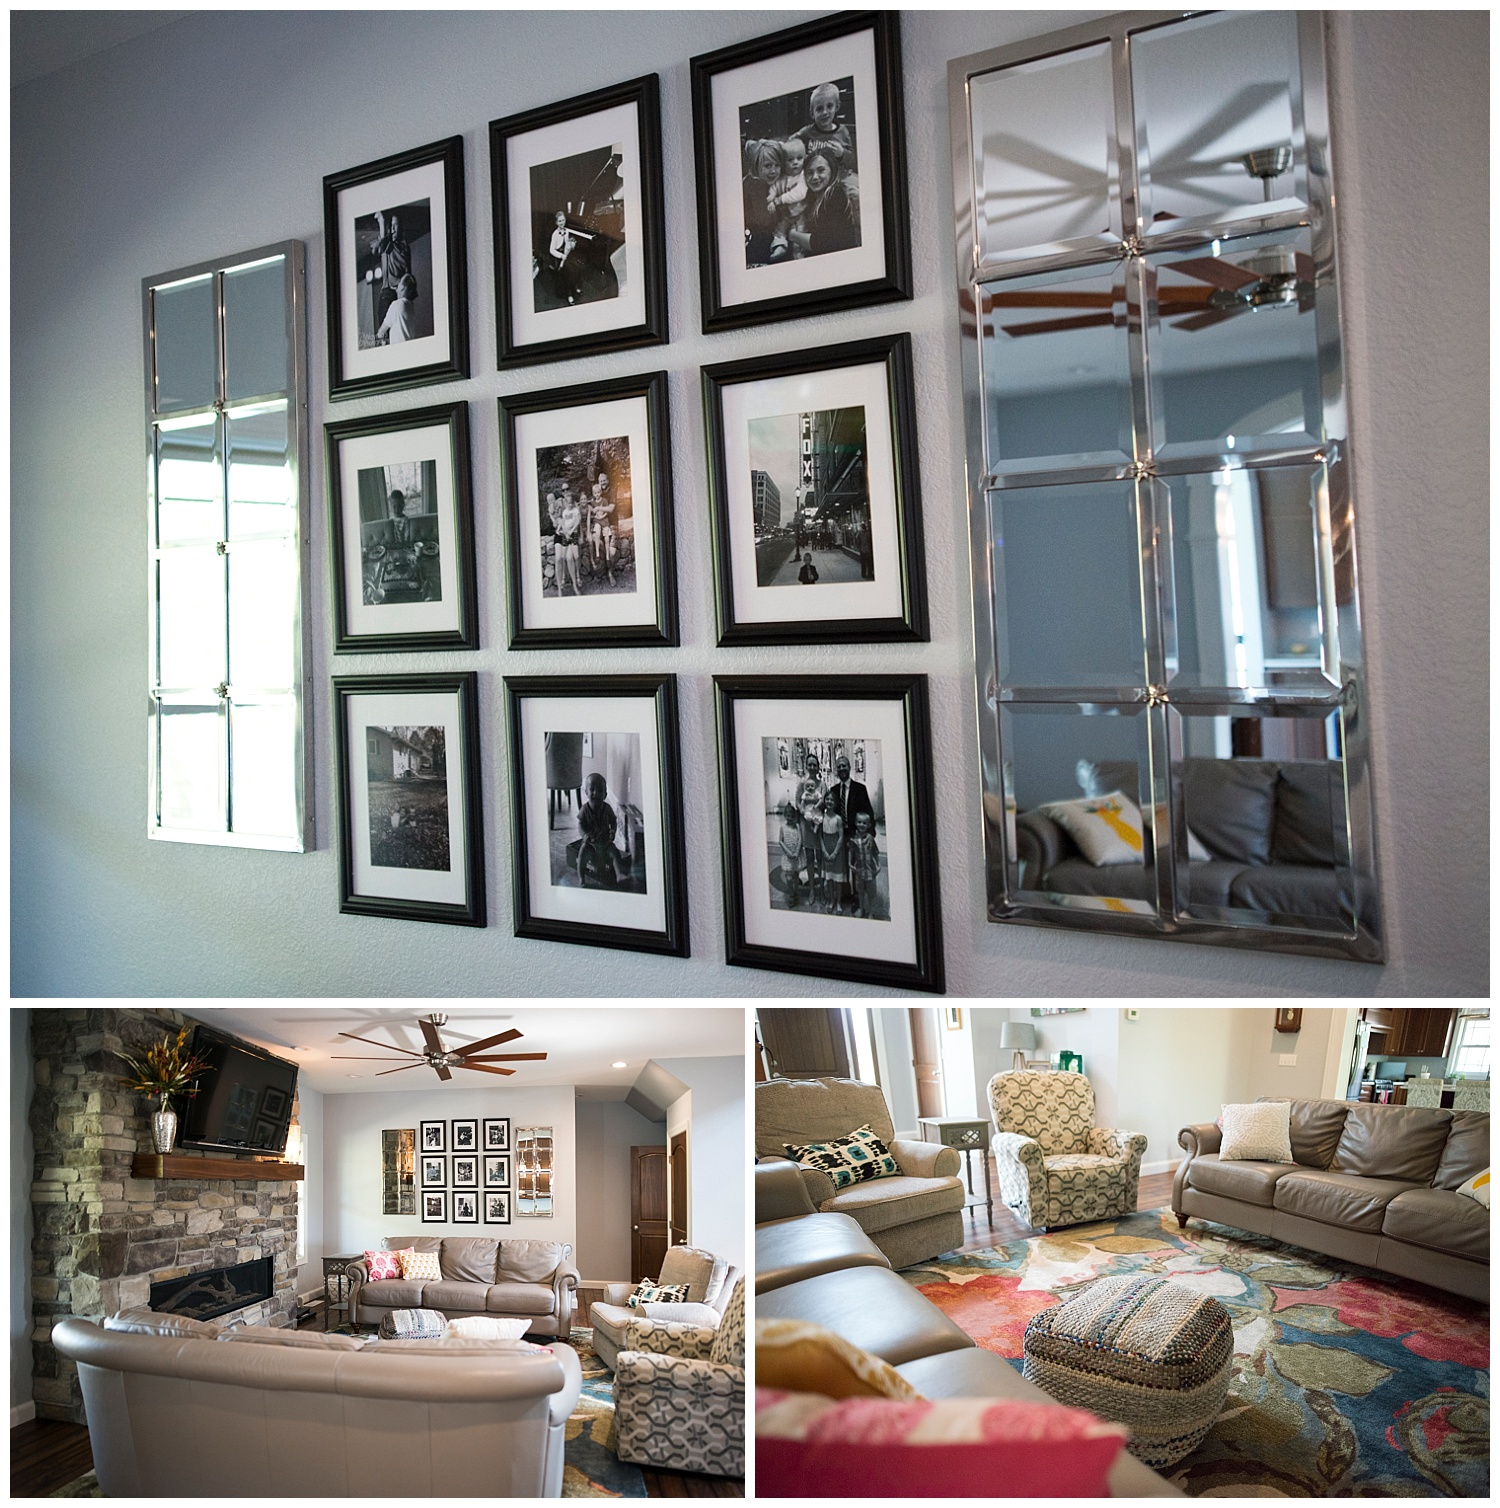 The well-thought-out wall collage with matching frames and black and white photos is not only a focal point but also a perfect and inviting way to share family photos with visitors. The mirrors add a little bling and extra light to the room.